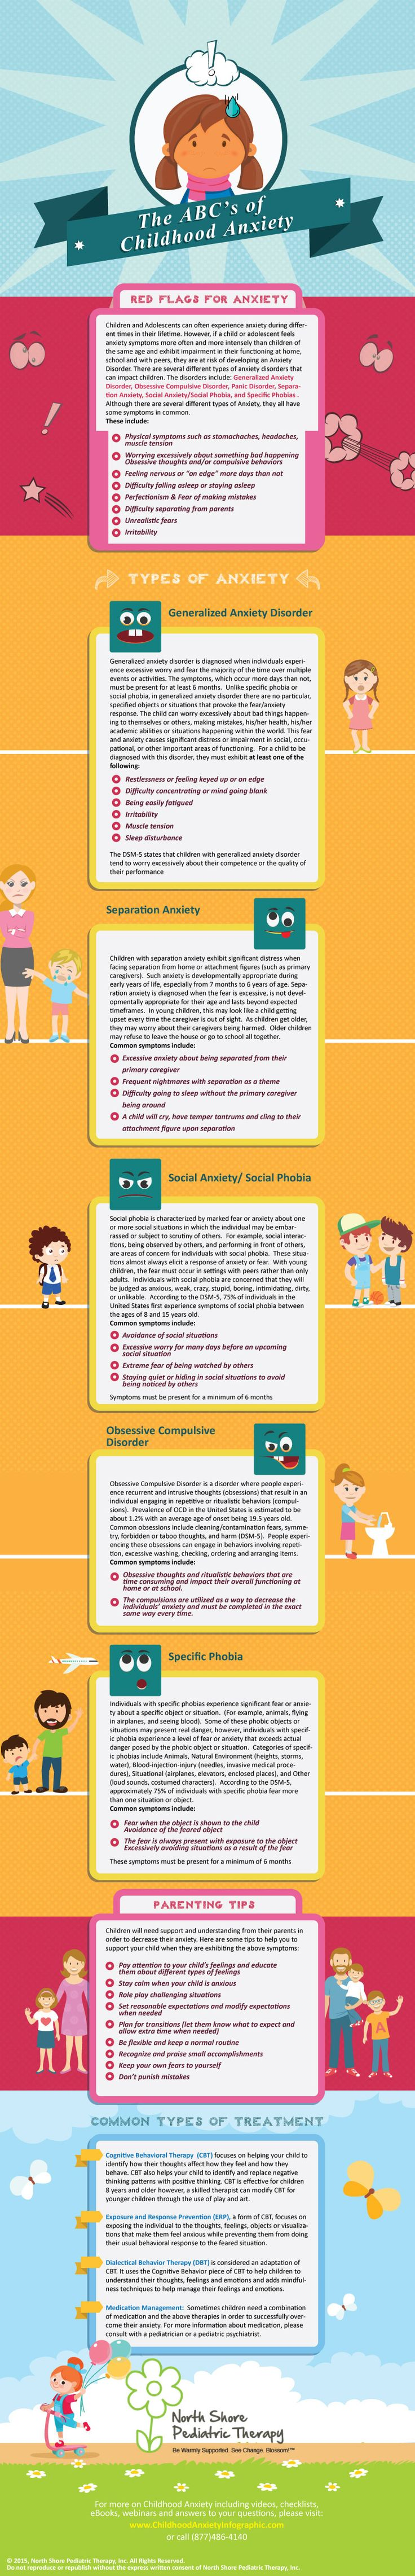 Learn the ABC's of Childhood Anxiety with this helpful infographic.